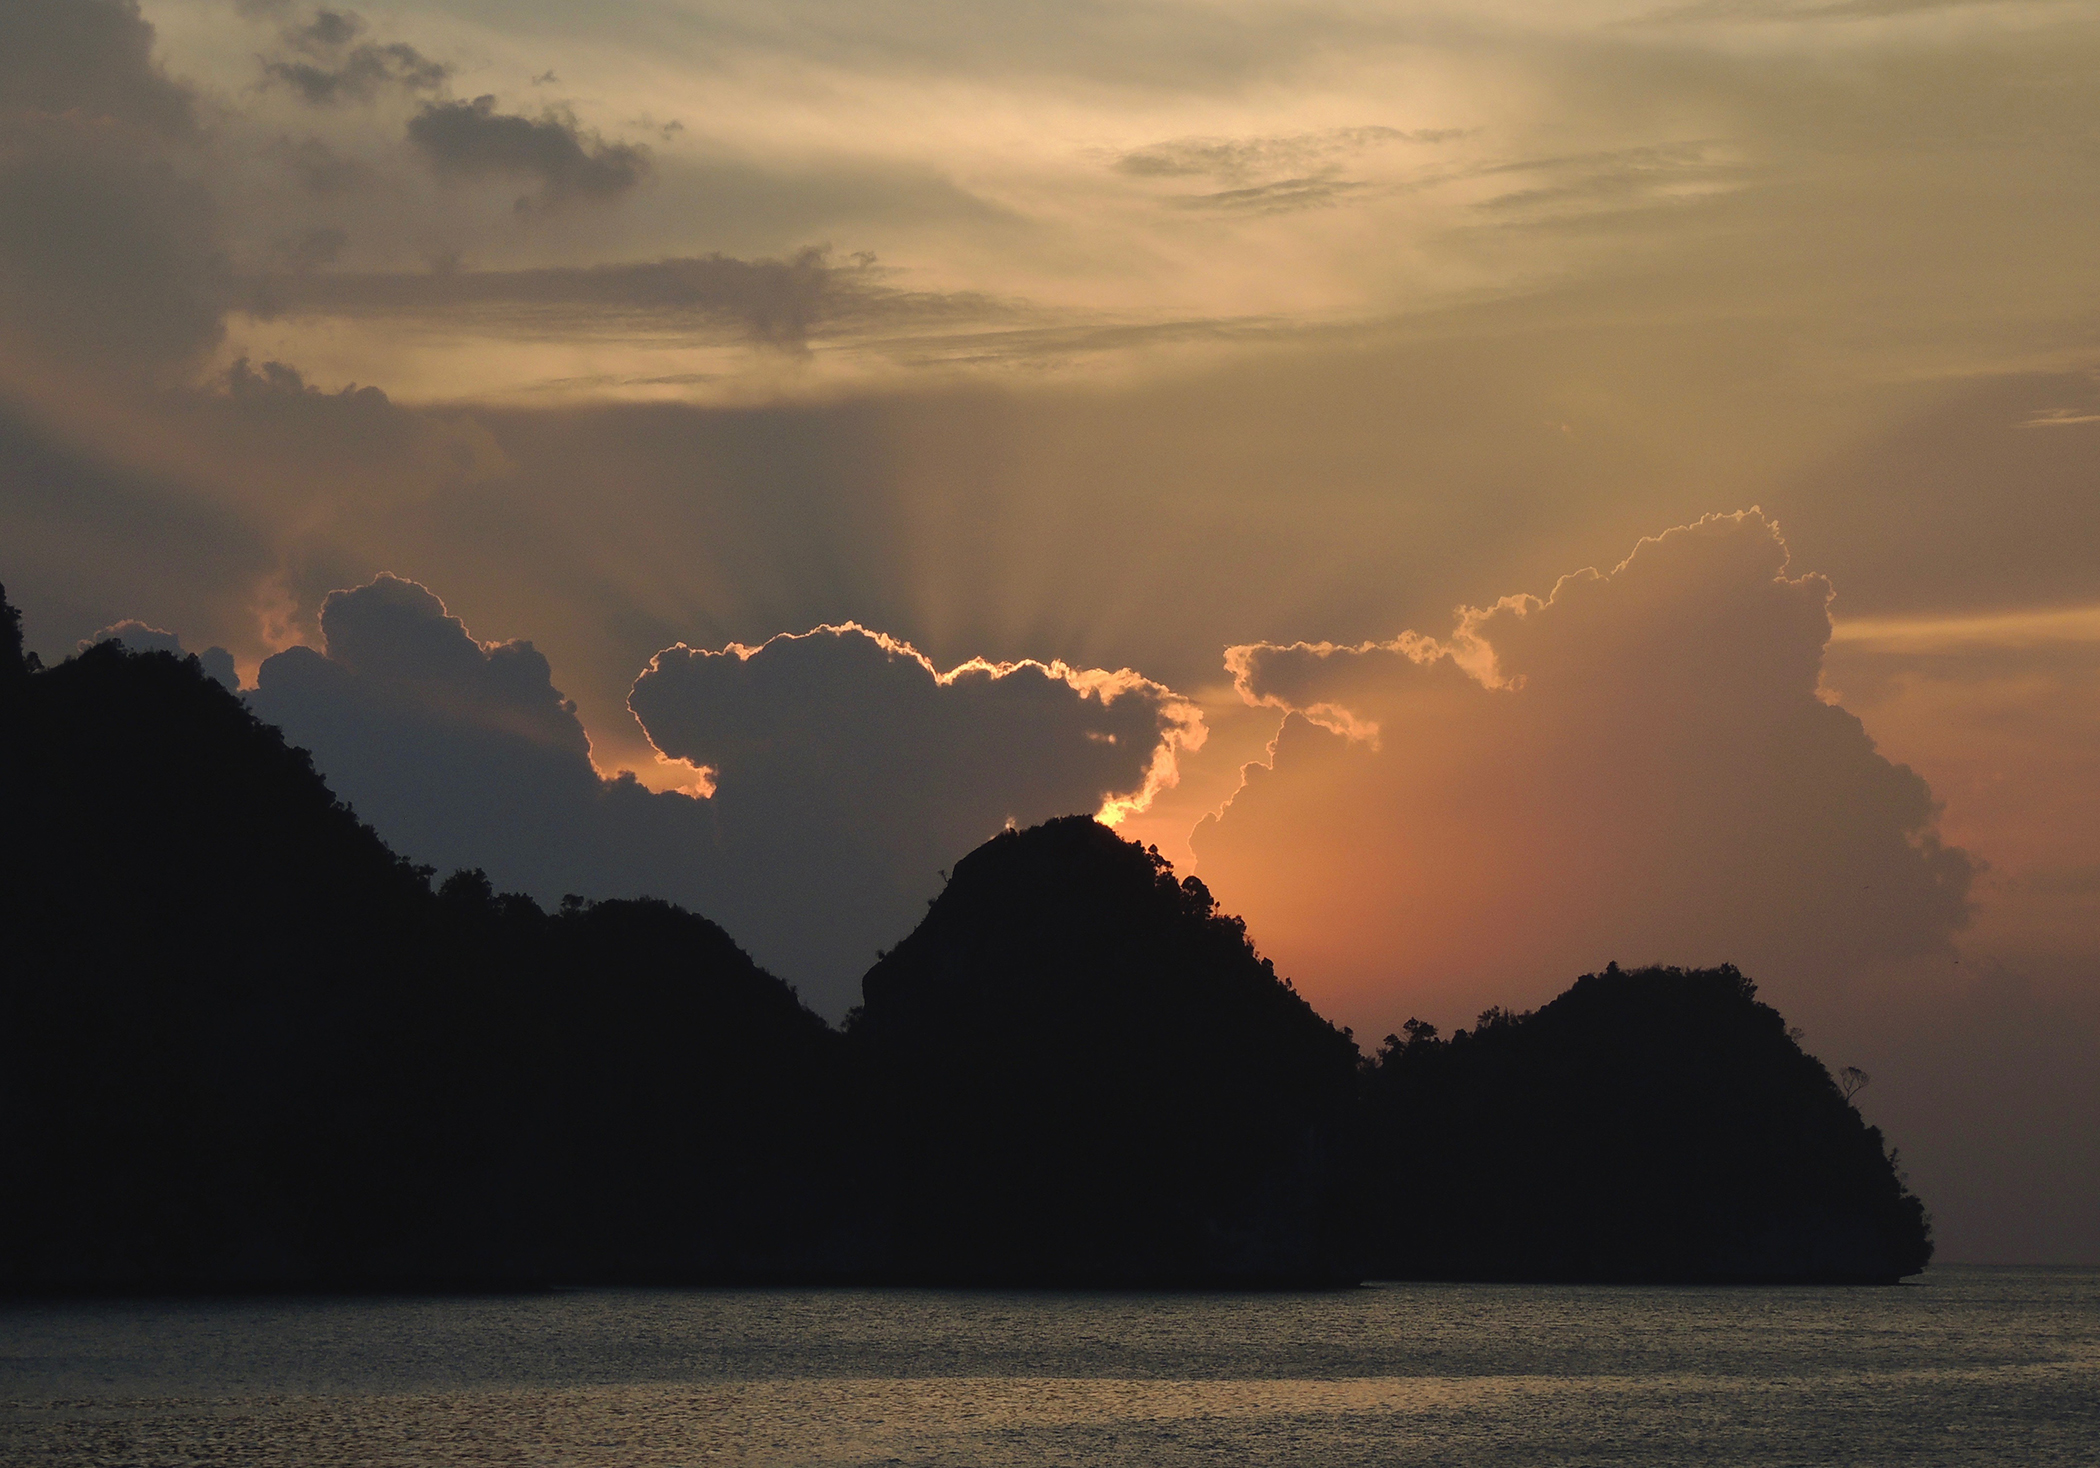 1st place - Clouds in Raja Ampat - Kathy Smith